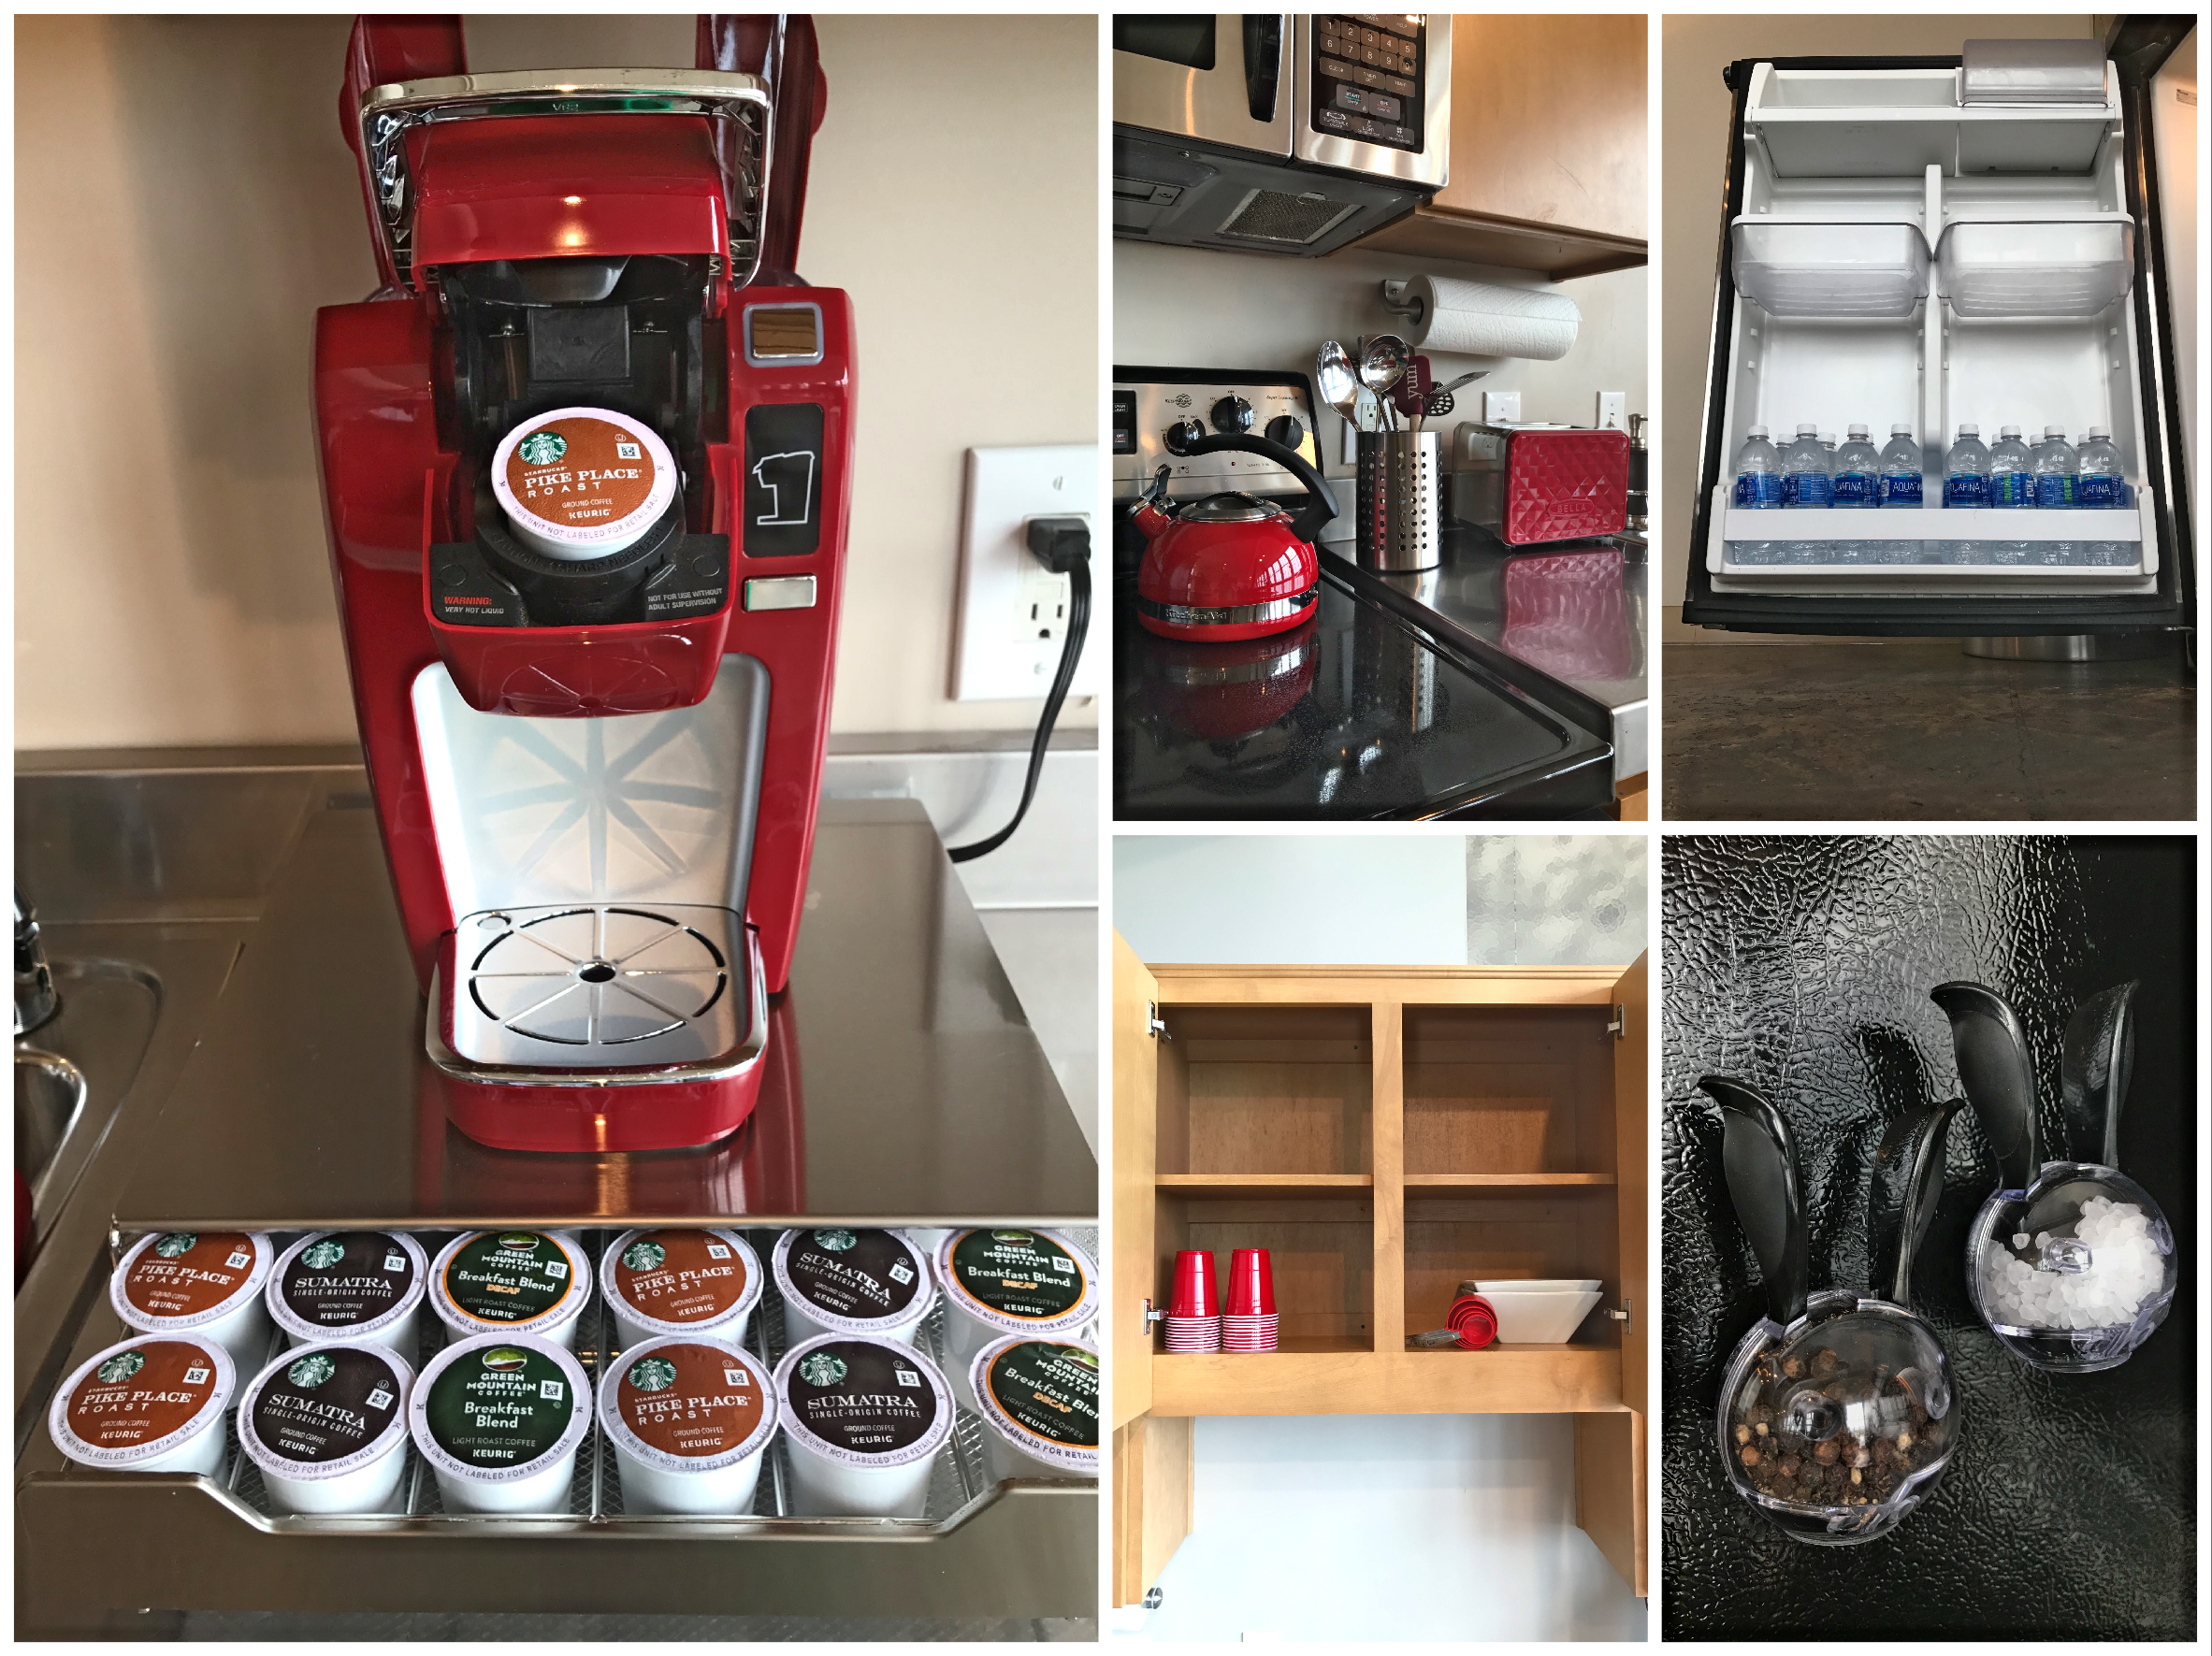 Loft Reverie Hotel 707 Kitchen + Amenities + Coffee + Solo Cups + Measuring + Cooking + Kettle + Toa